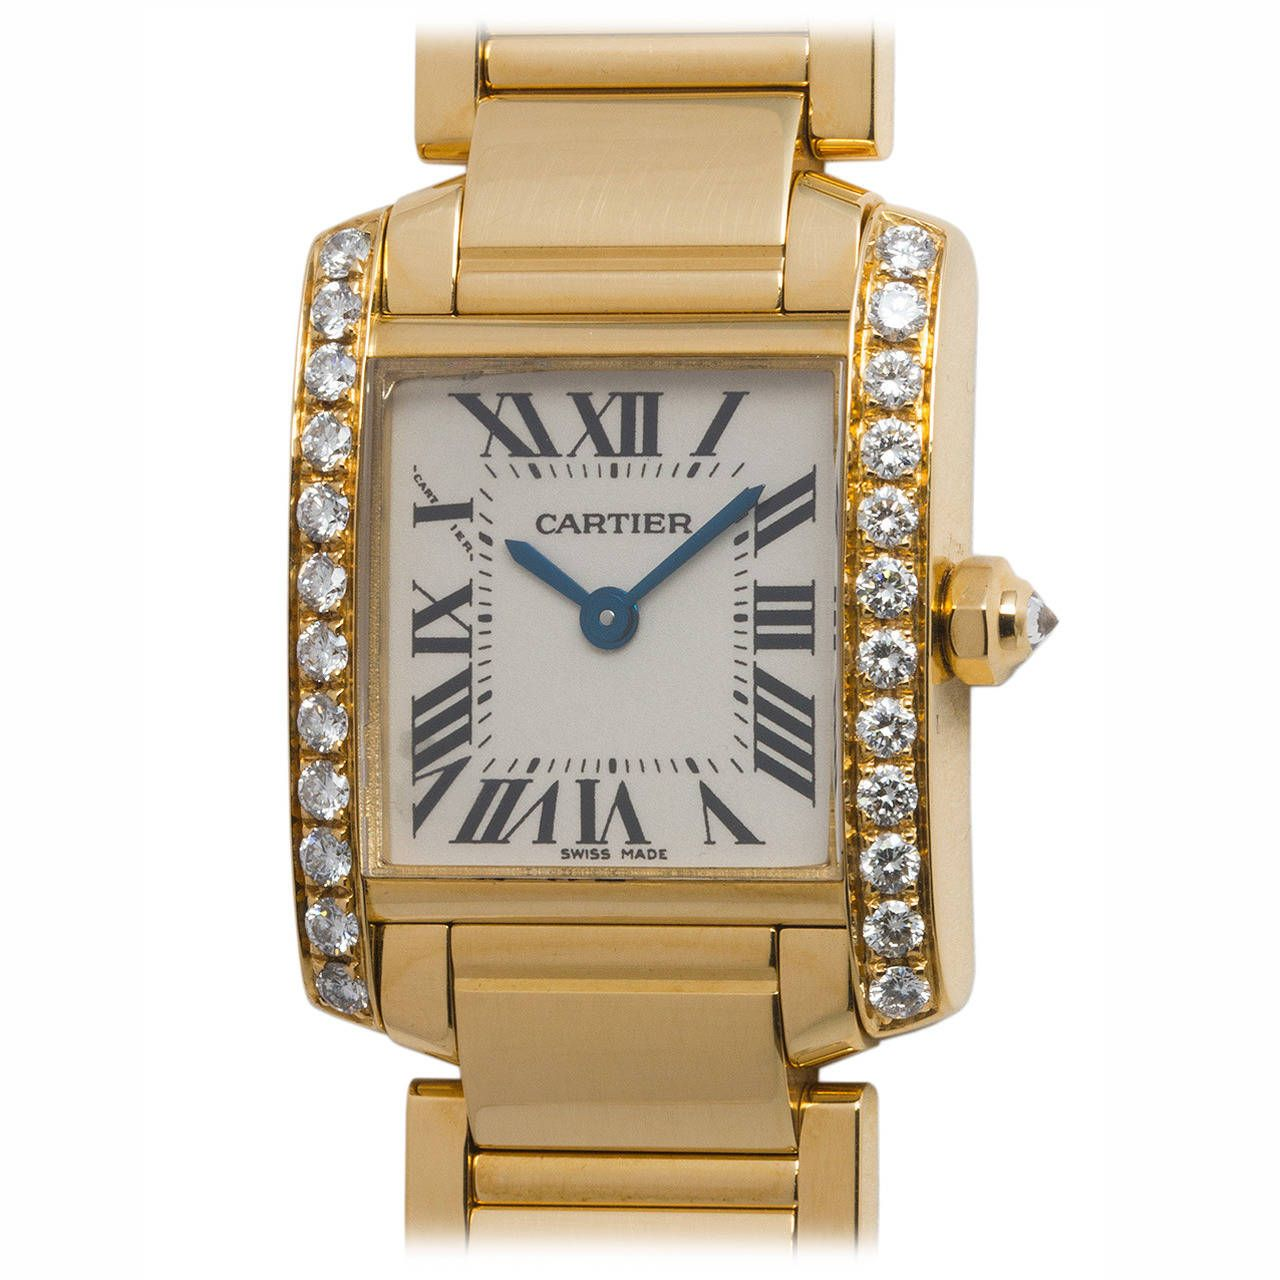 Cartier ladyus yellow gold and diamond tank francaise wristwatch